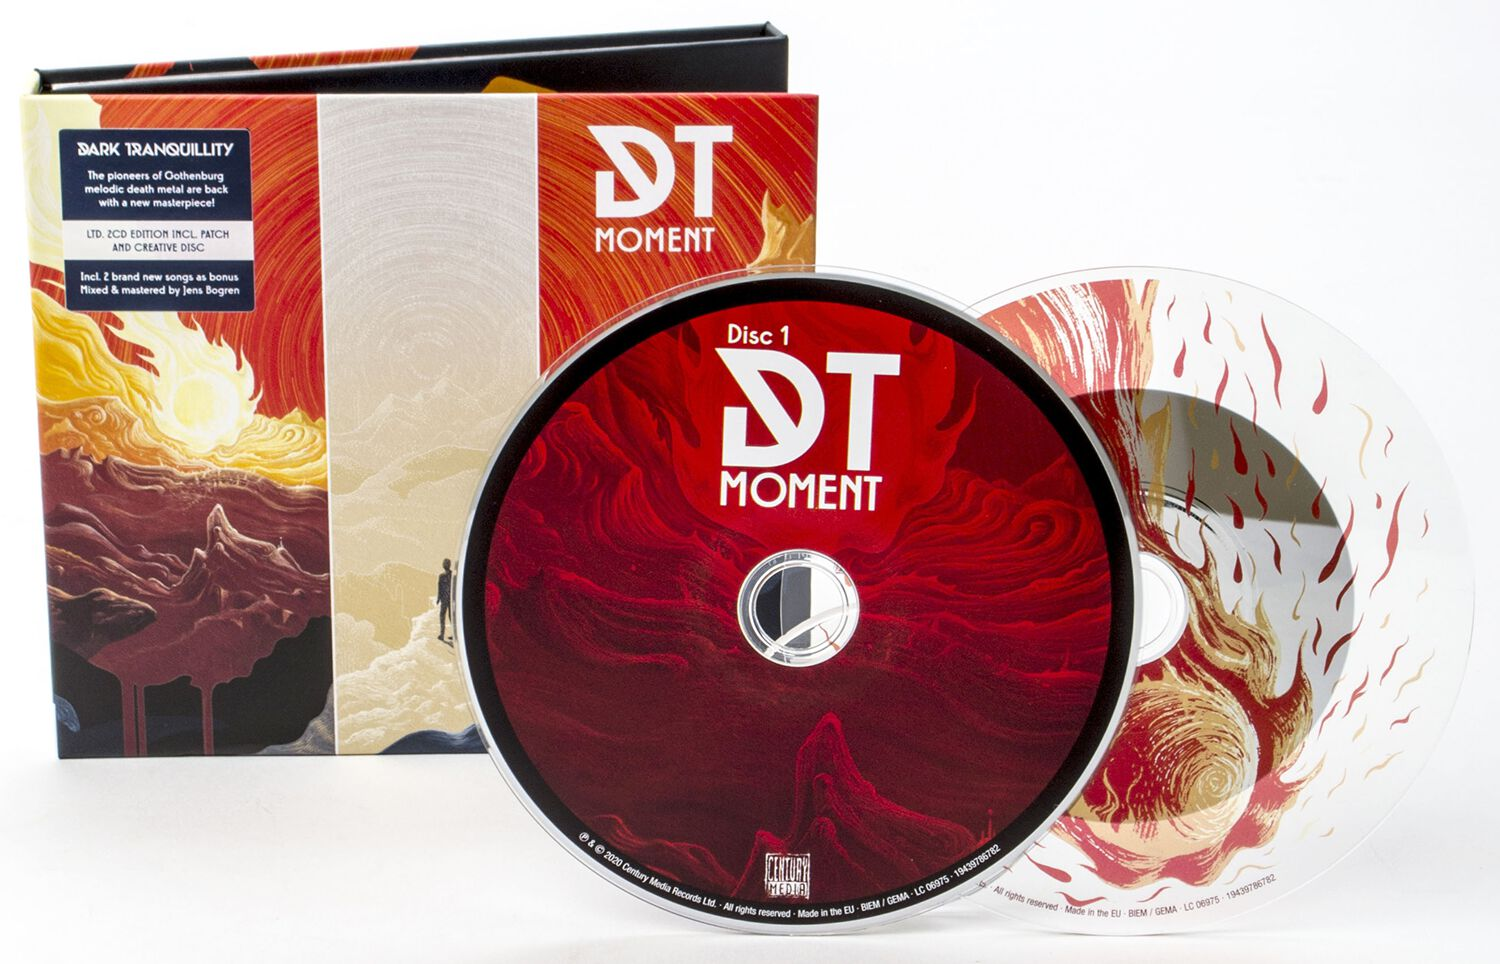 Image of Dark Tranquillity Moment 2-CD & Patch Standard